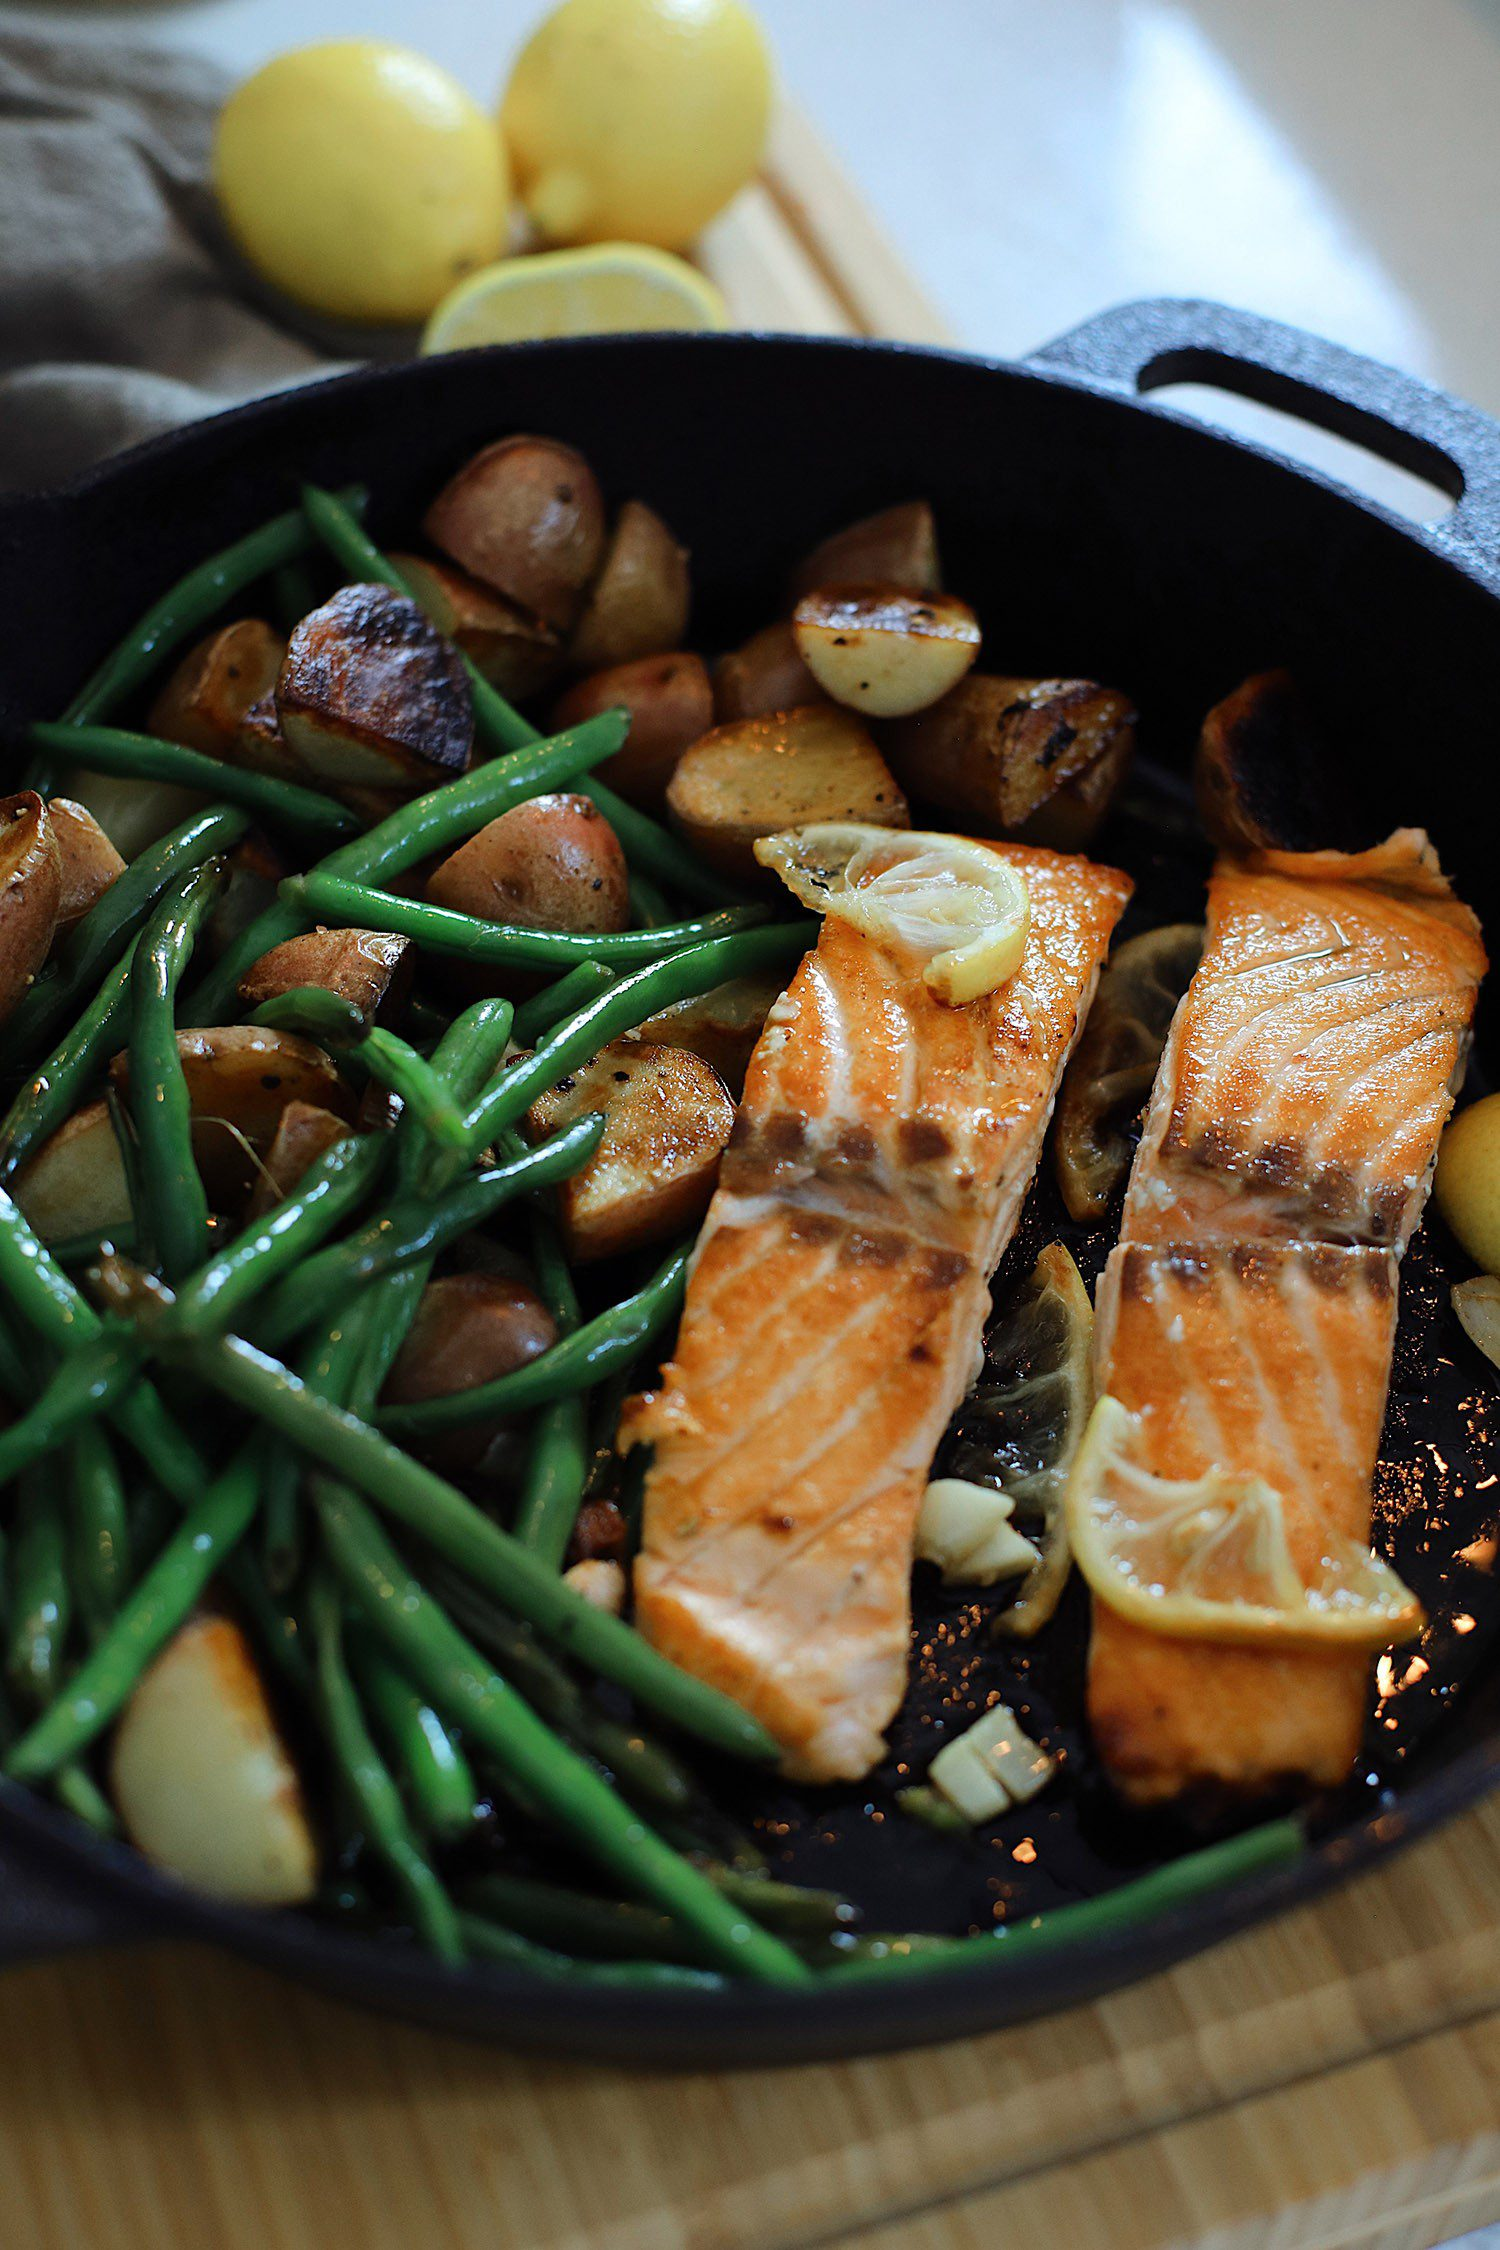 Wondering how to cook salmon? We've got such a simple and easy cast iron skillet salmon recipe with a delicious garlic lemon butter glaze. Pan seared salmon is an easy way to get it just right, every time. Perfect for a date night at home. Check out these valentines dinner ideas!